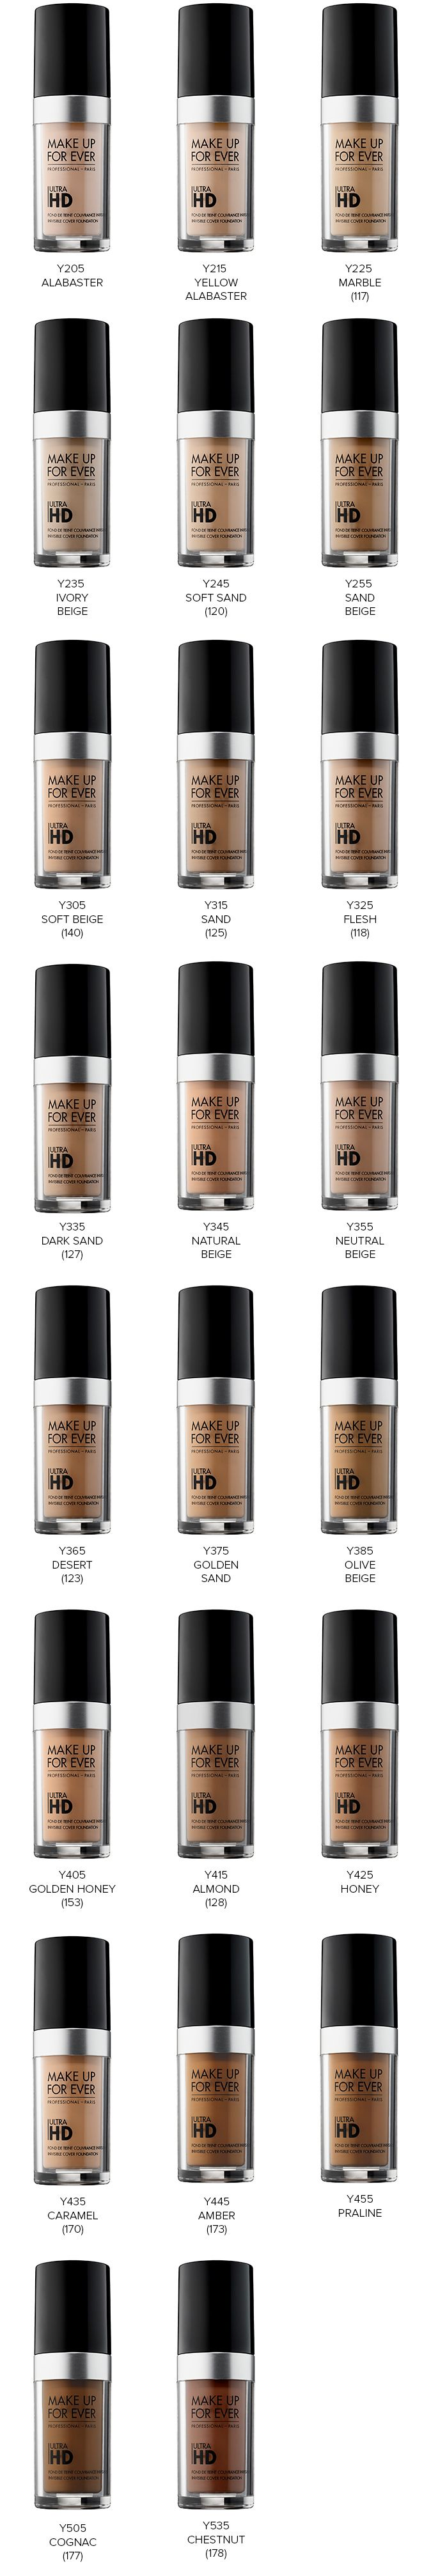 Make Up For Ever Ultra HD Foundation & Stick Foundation